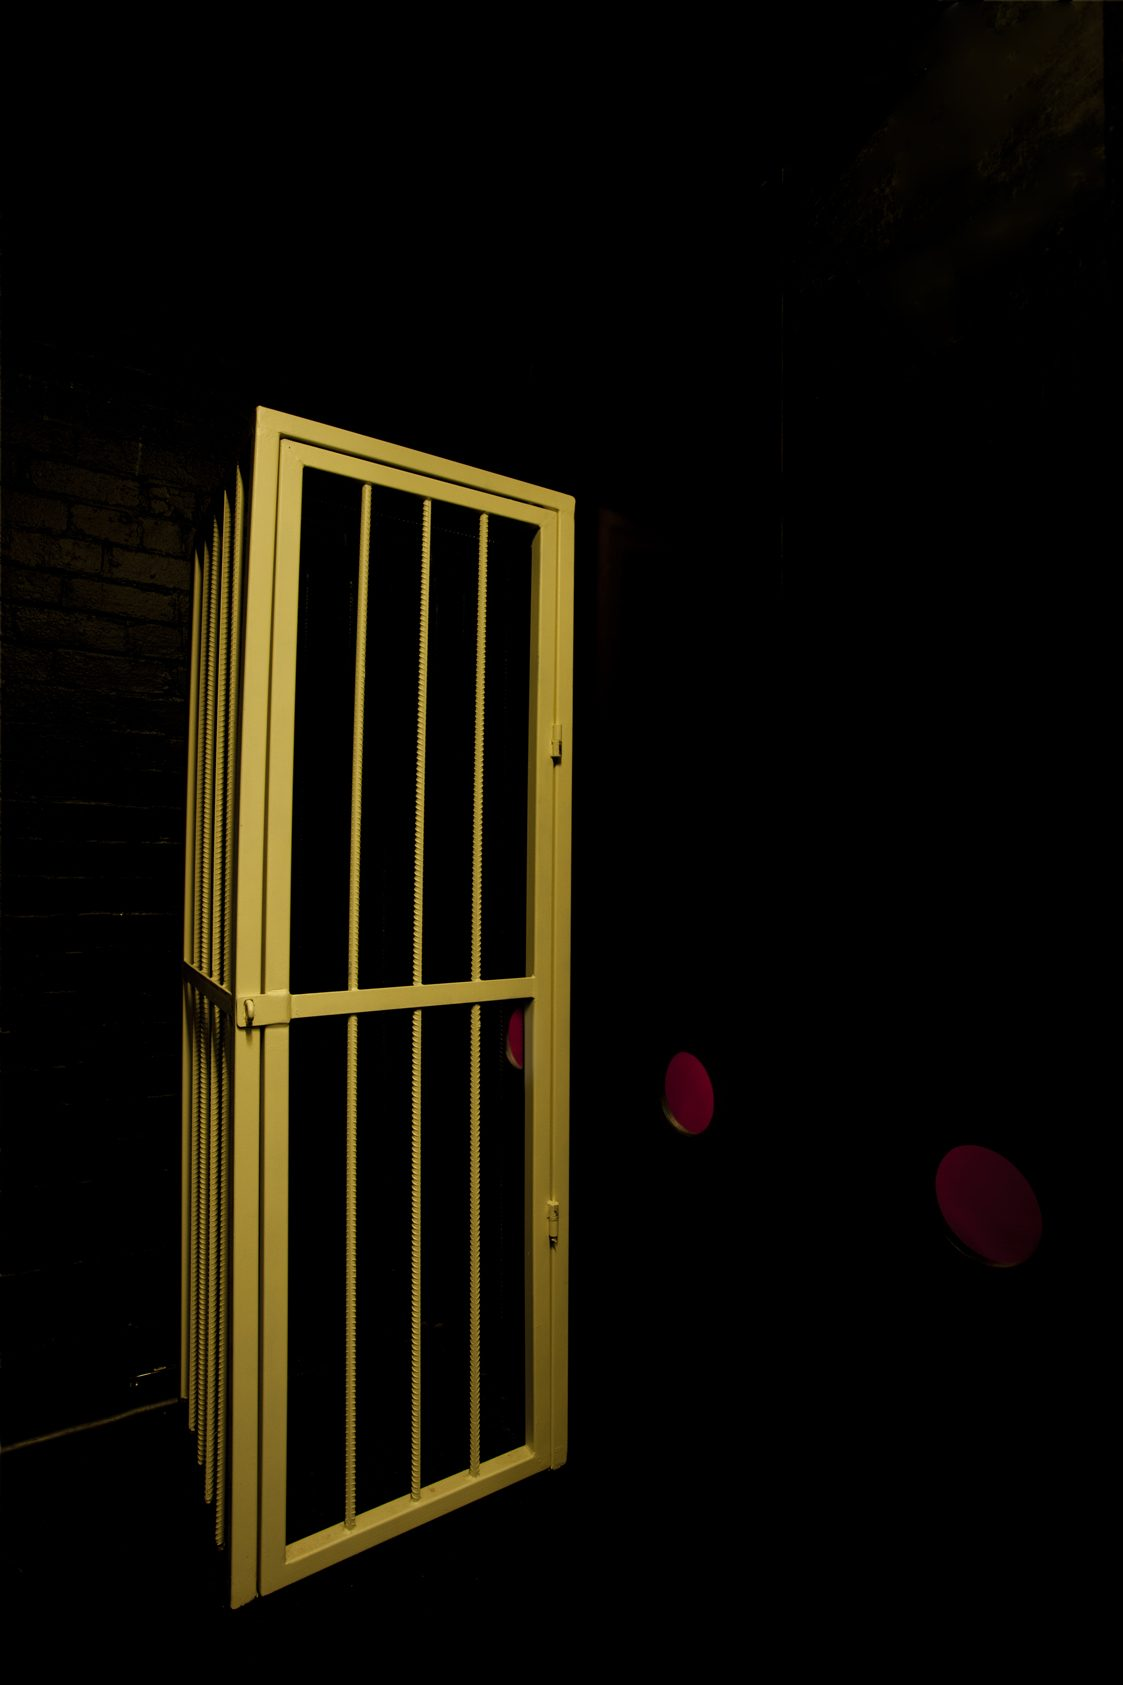 Cage next to the dark room.